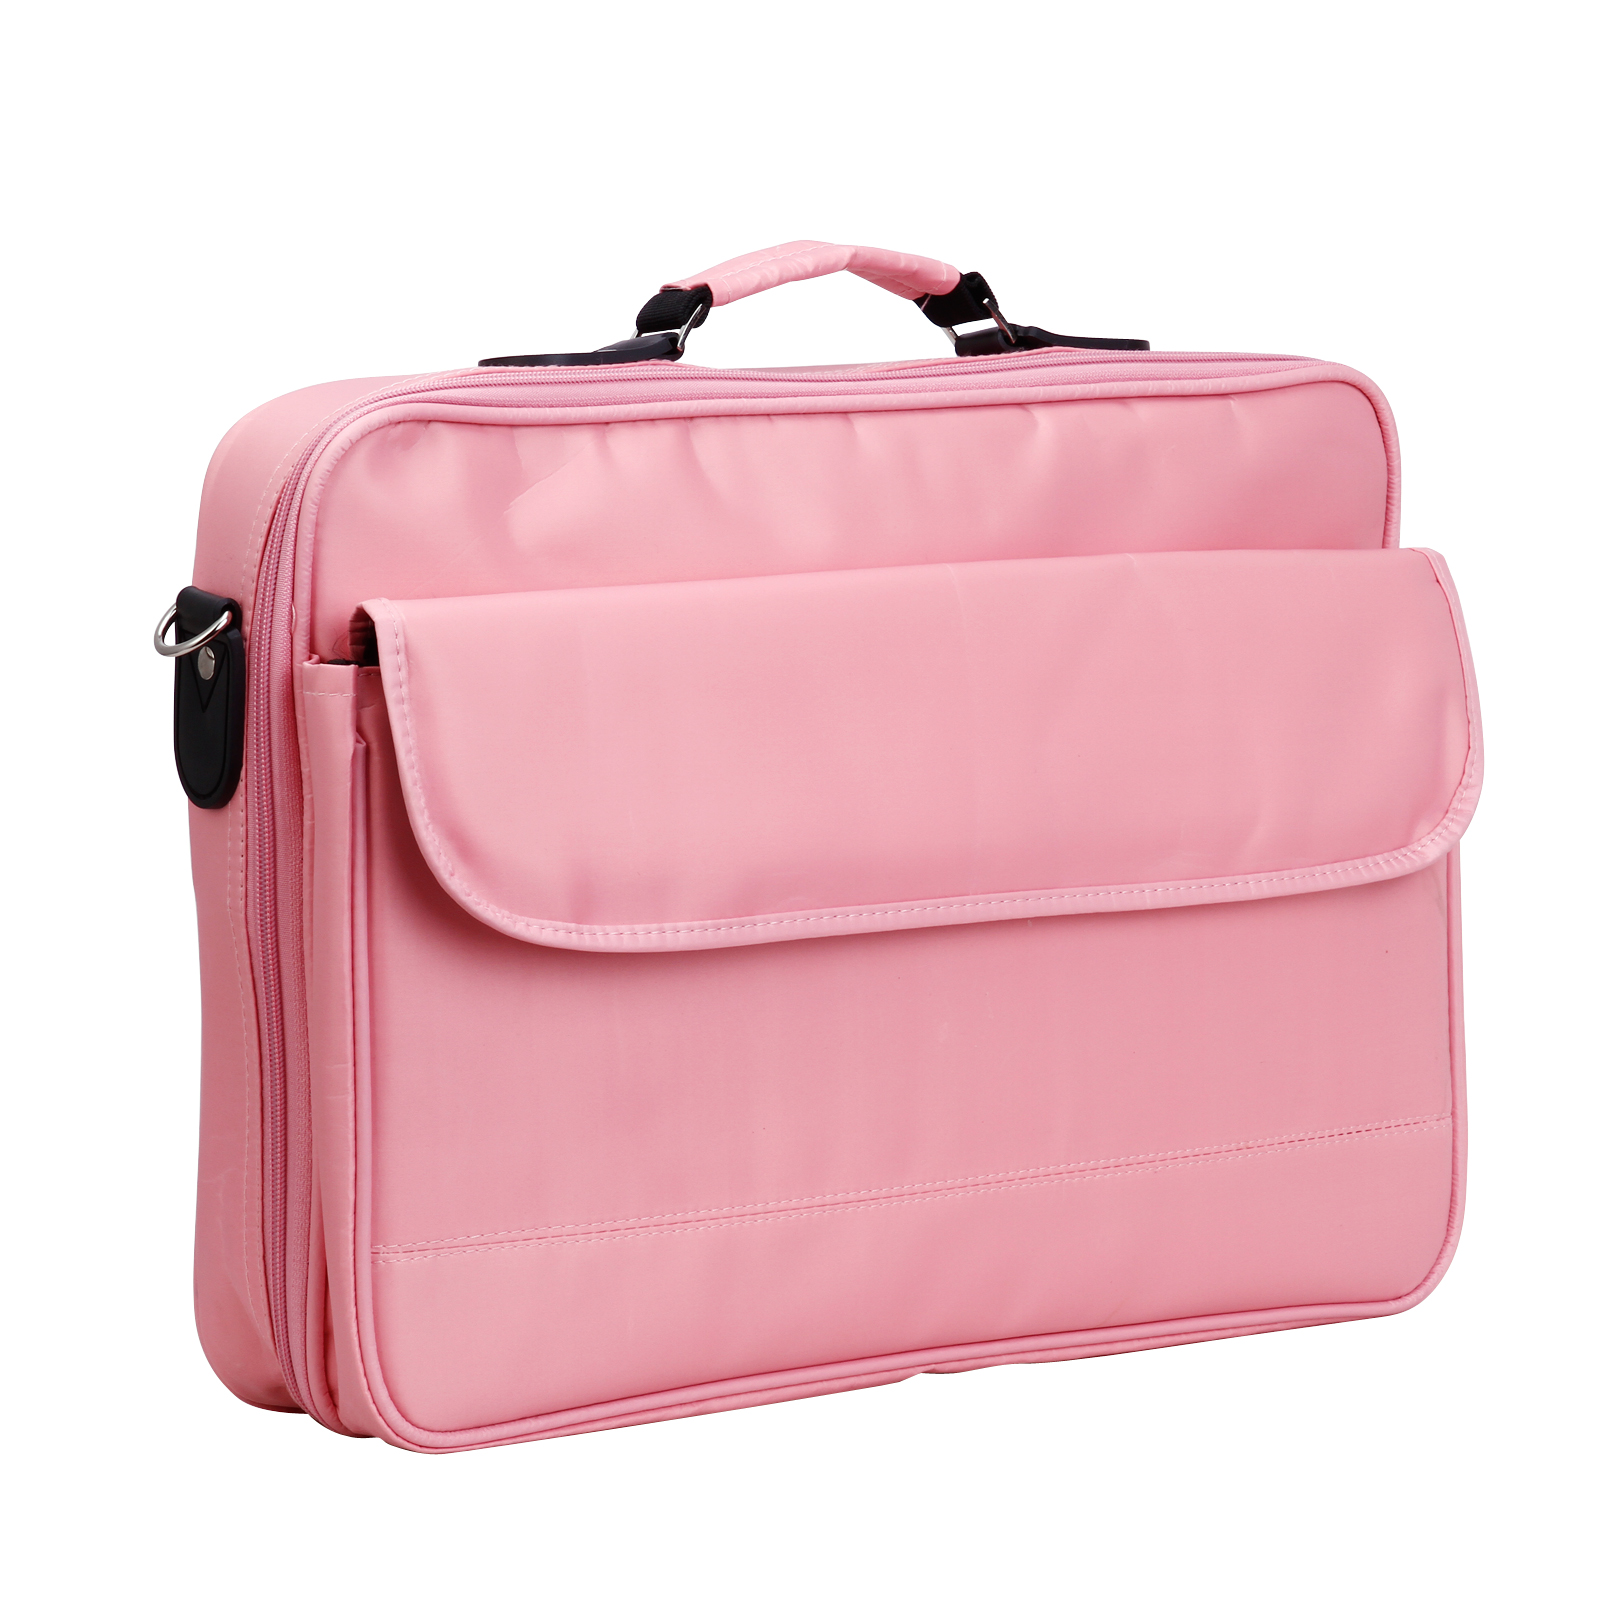 universal 15 17 16 zoll laptoptasche notebooktasche notebook case laptop tasche ebay